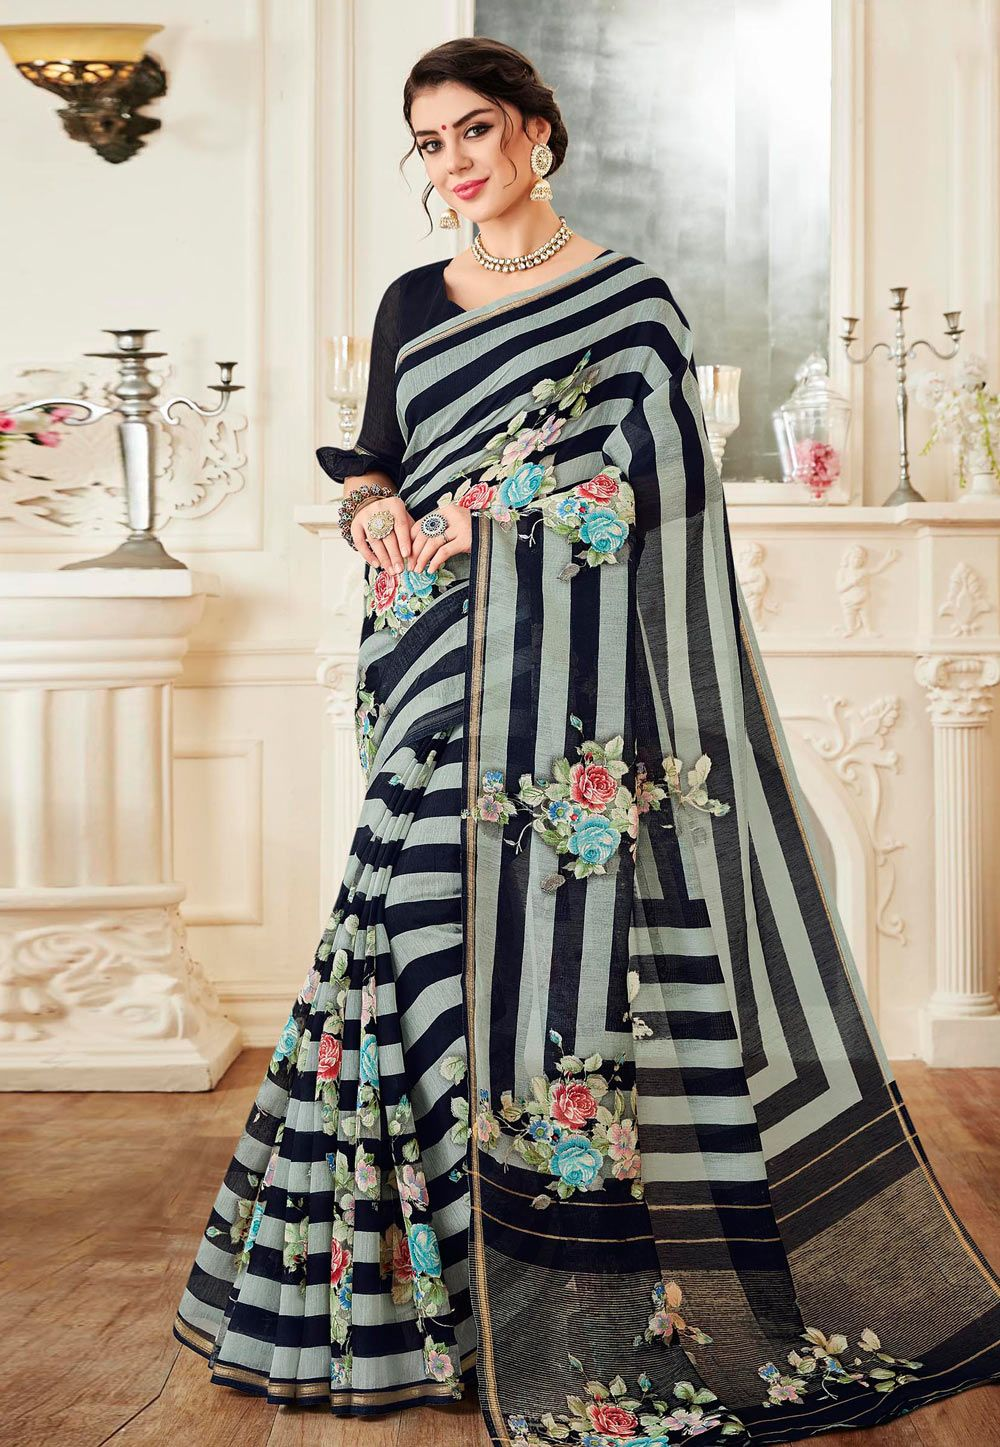 d285fa8f38bdf8 Buy Black Linen Saree With Blouse 155669 with blouse online at lowest price  from vast collection of sarees at Indianclothstore.com.